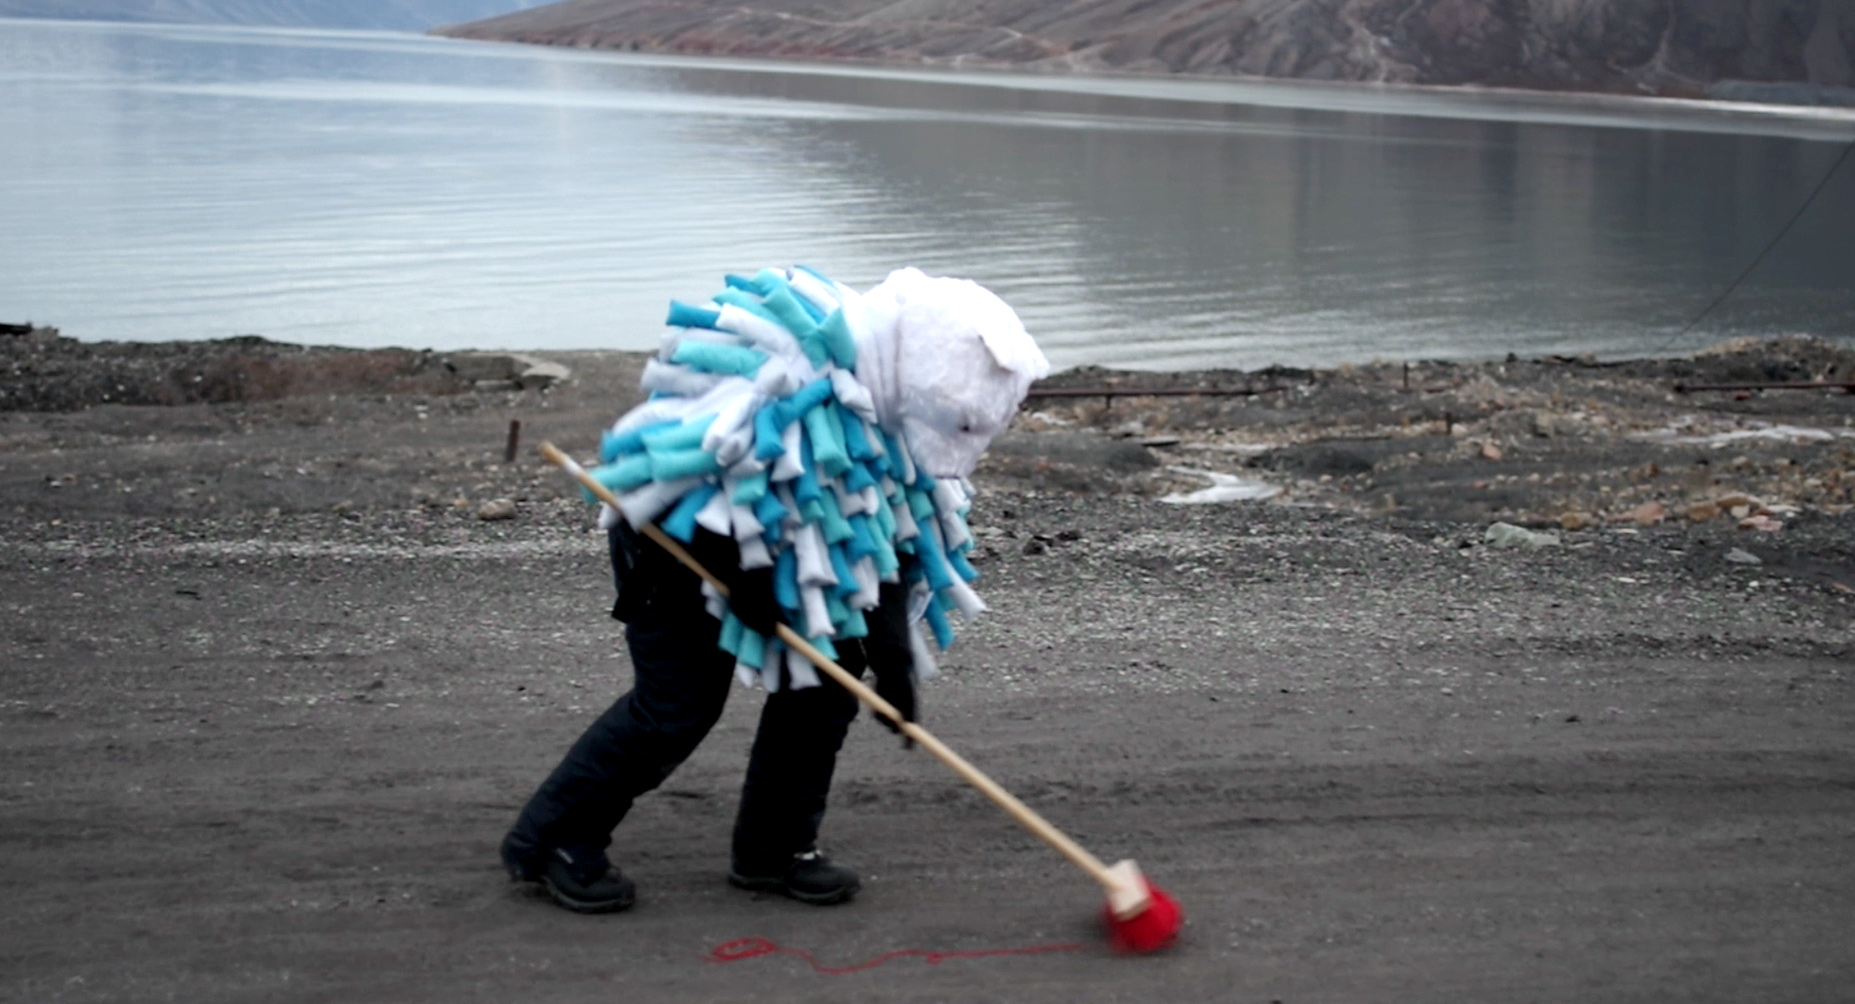 Performance art filmed in Pyramiden, Svalbard